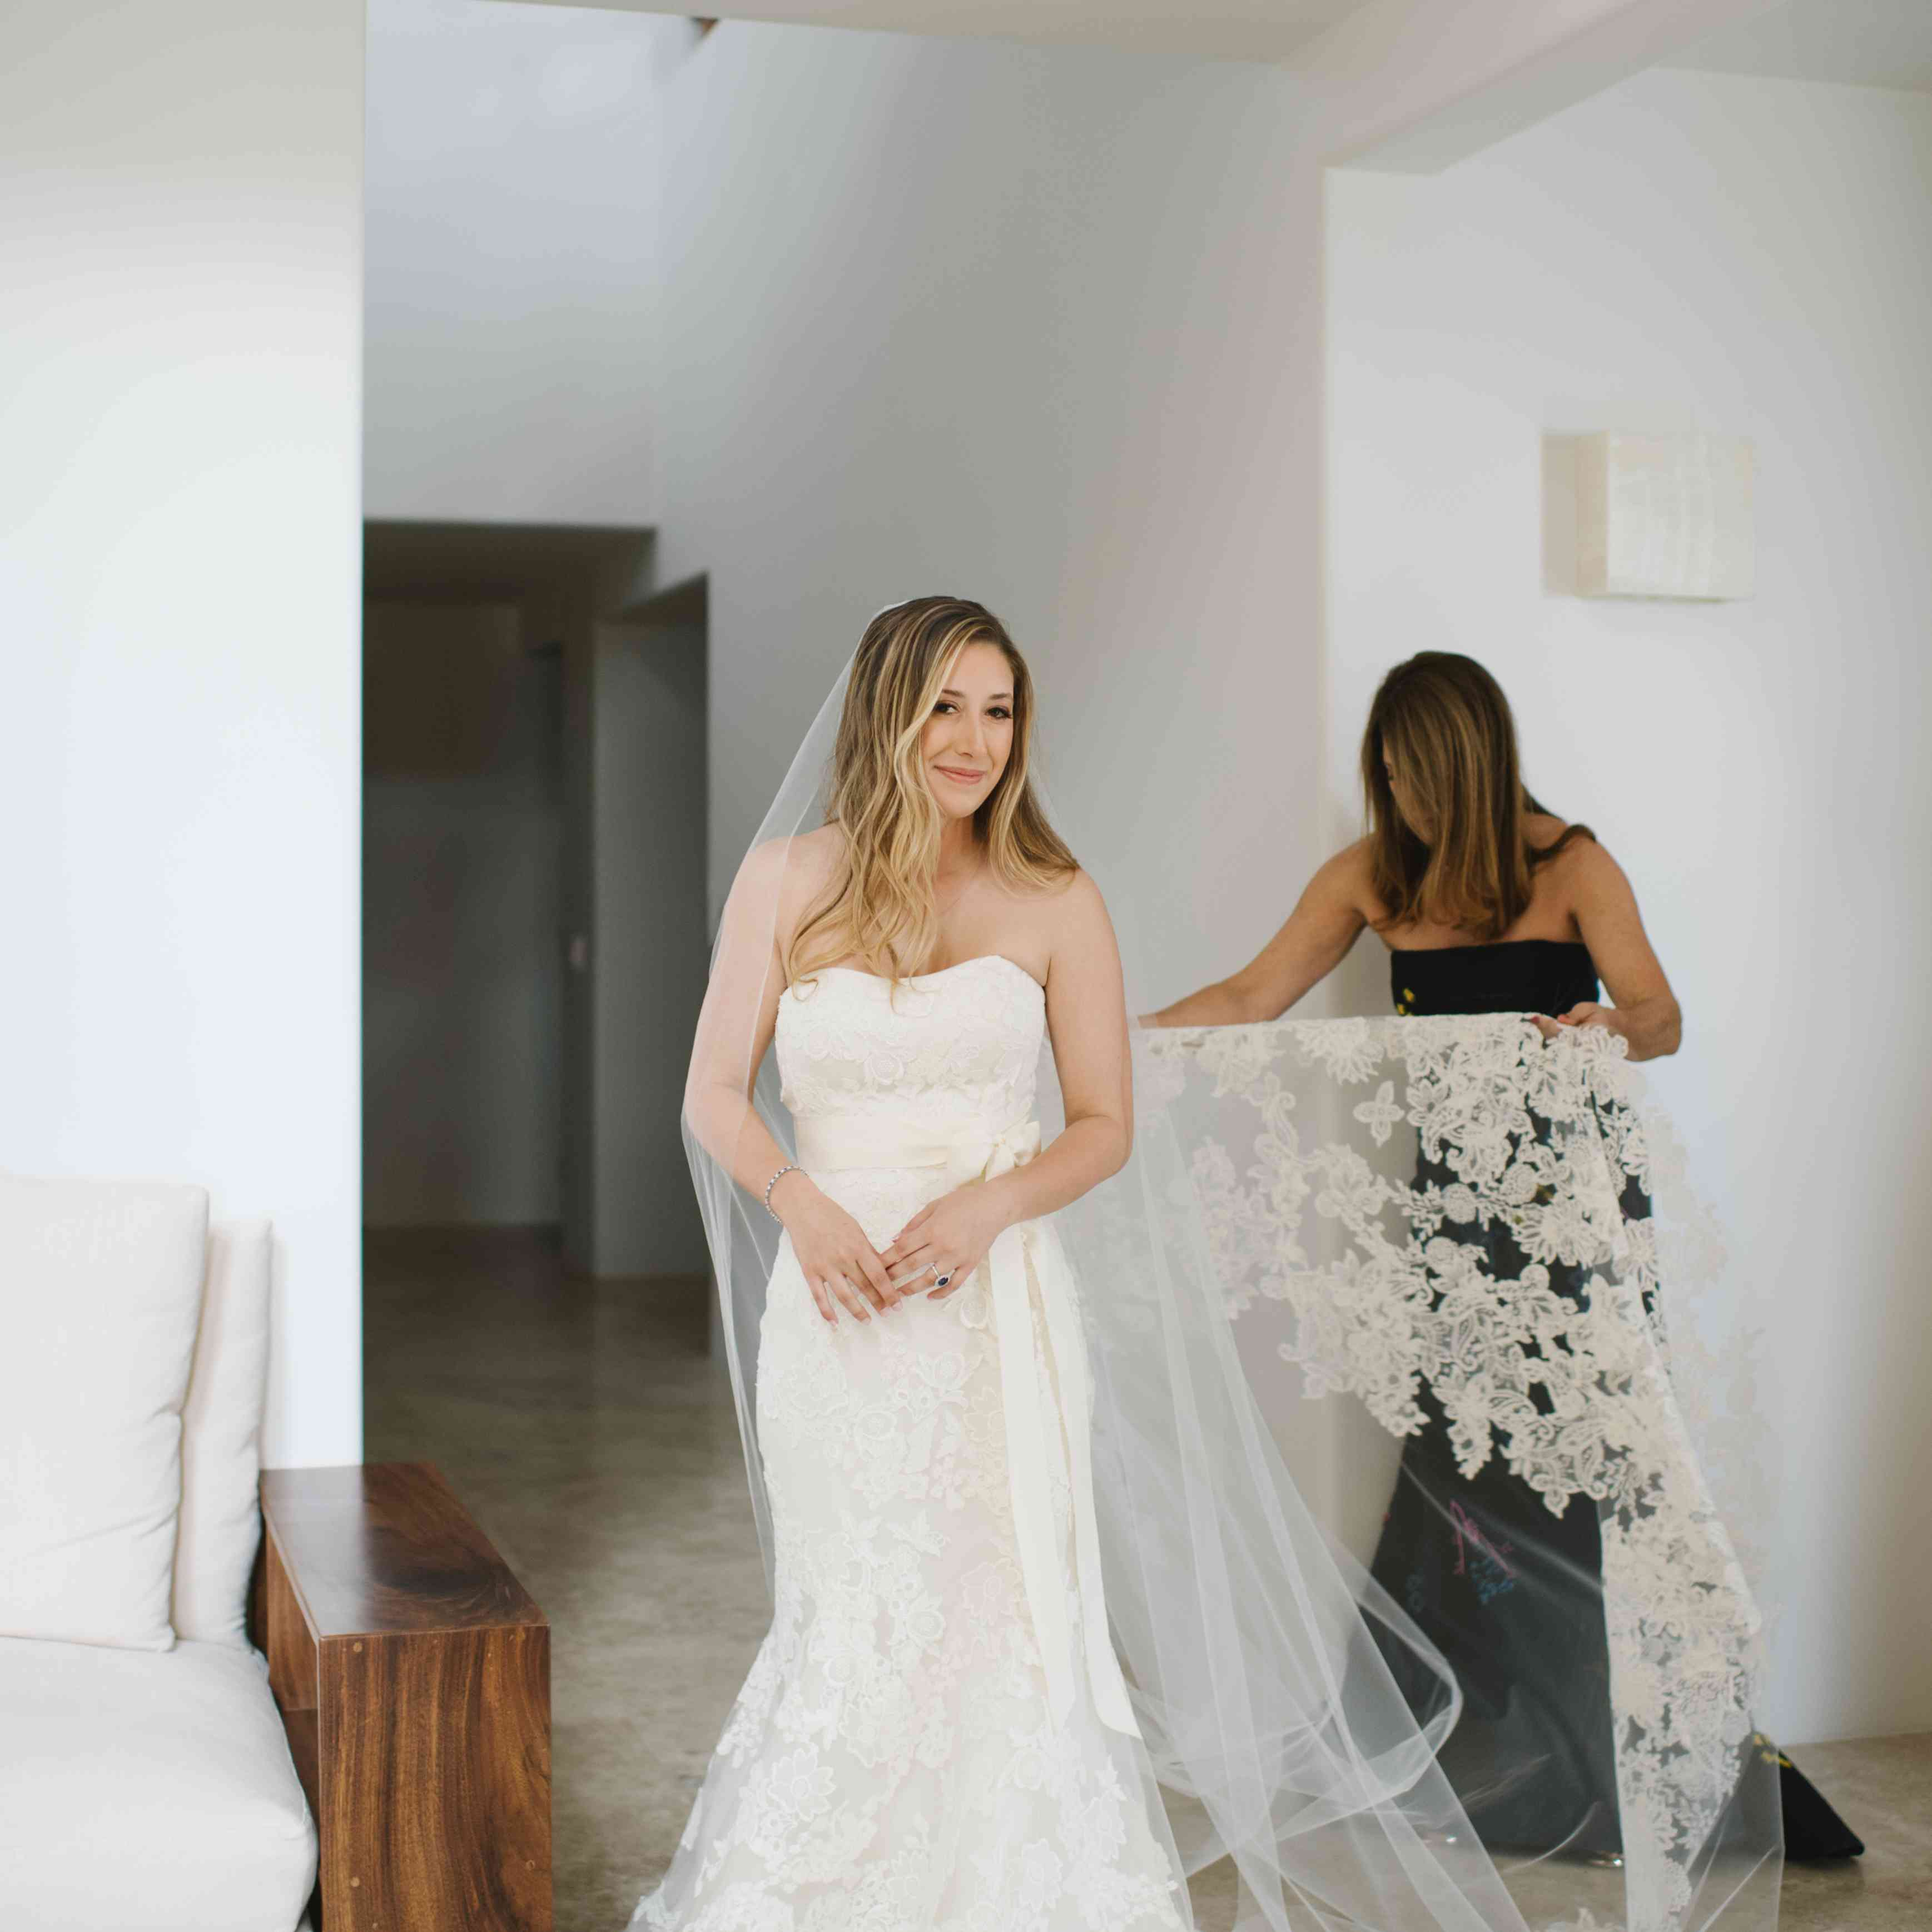 The bride in her wedding gown